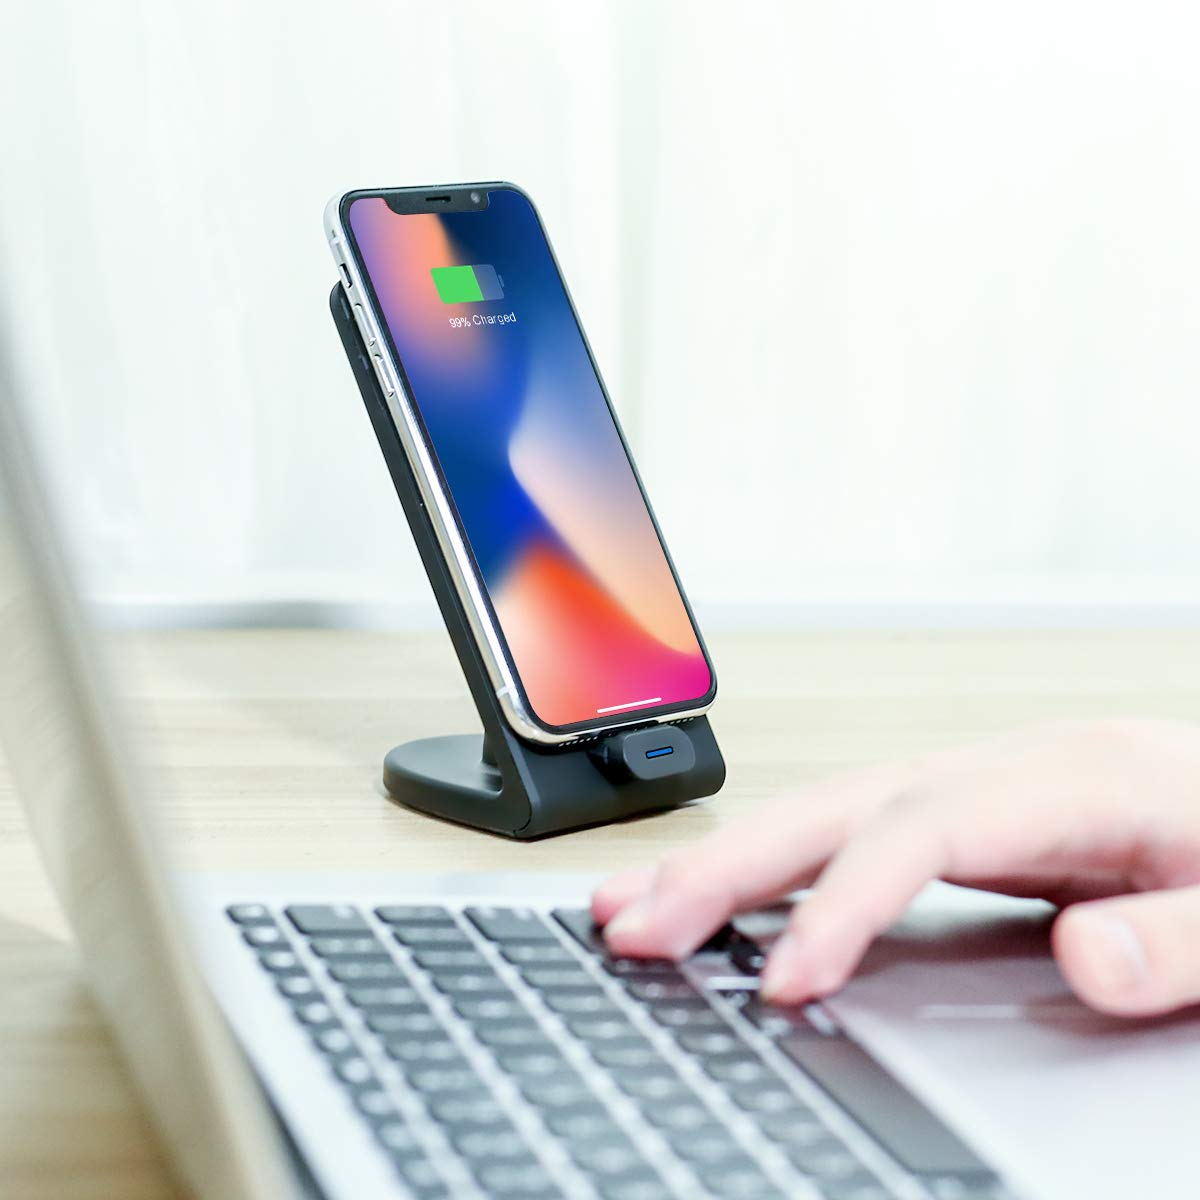 XLTOK 10W Fast Wireless Charger Schnelles Induktions Ladegerät